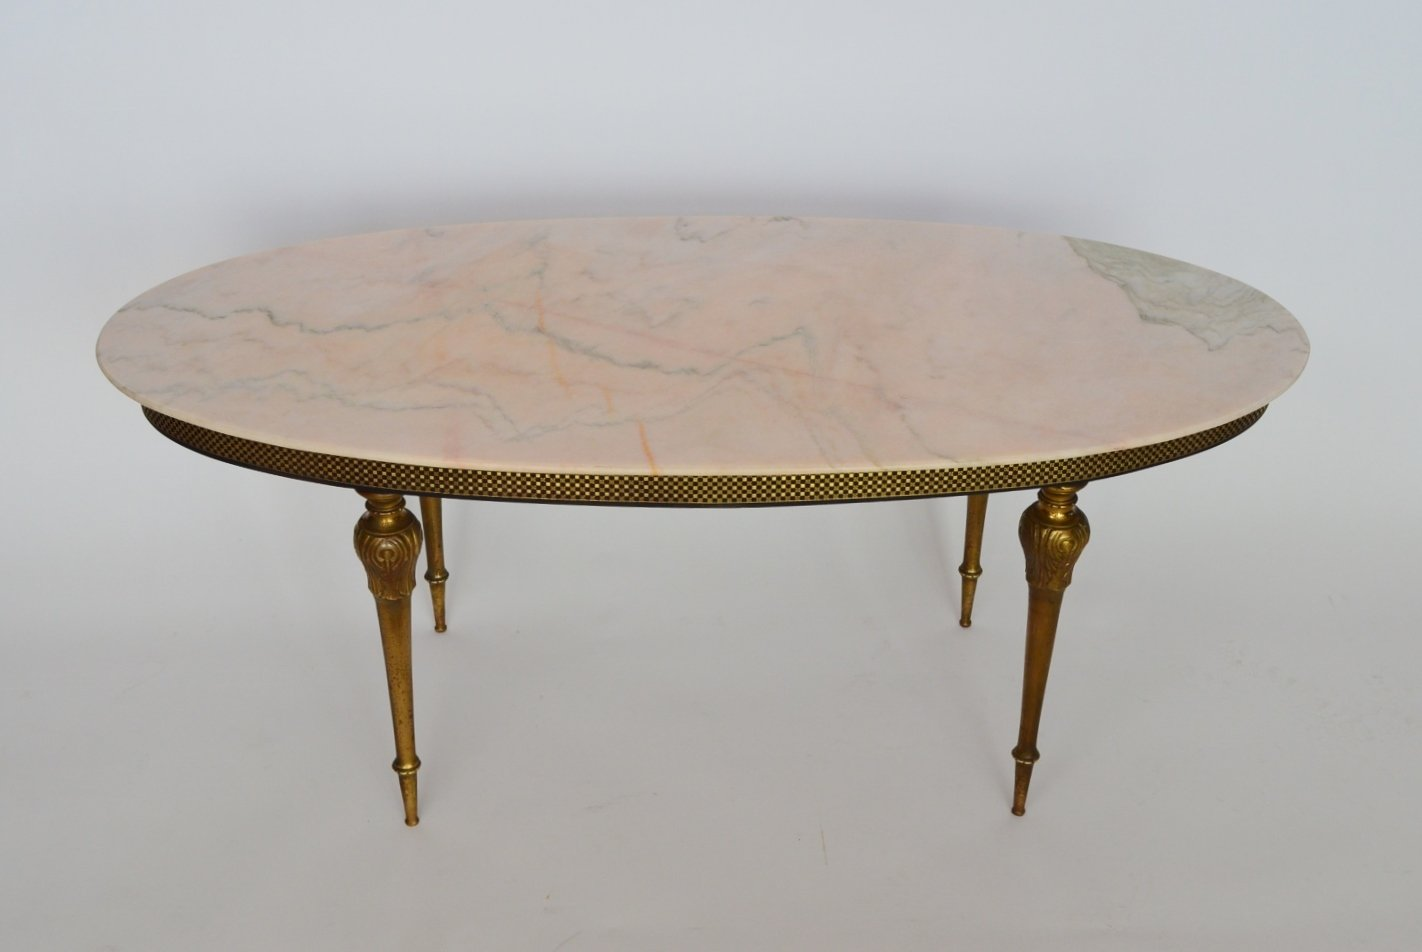 Rosa Aurora Marble & Brass Coffee Table, 1960s - Rosa Aurora Marble & Brass Coffee Table, 1960s For Sale At Pamono